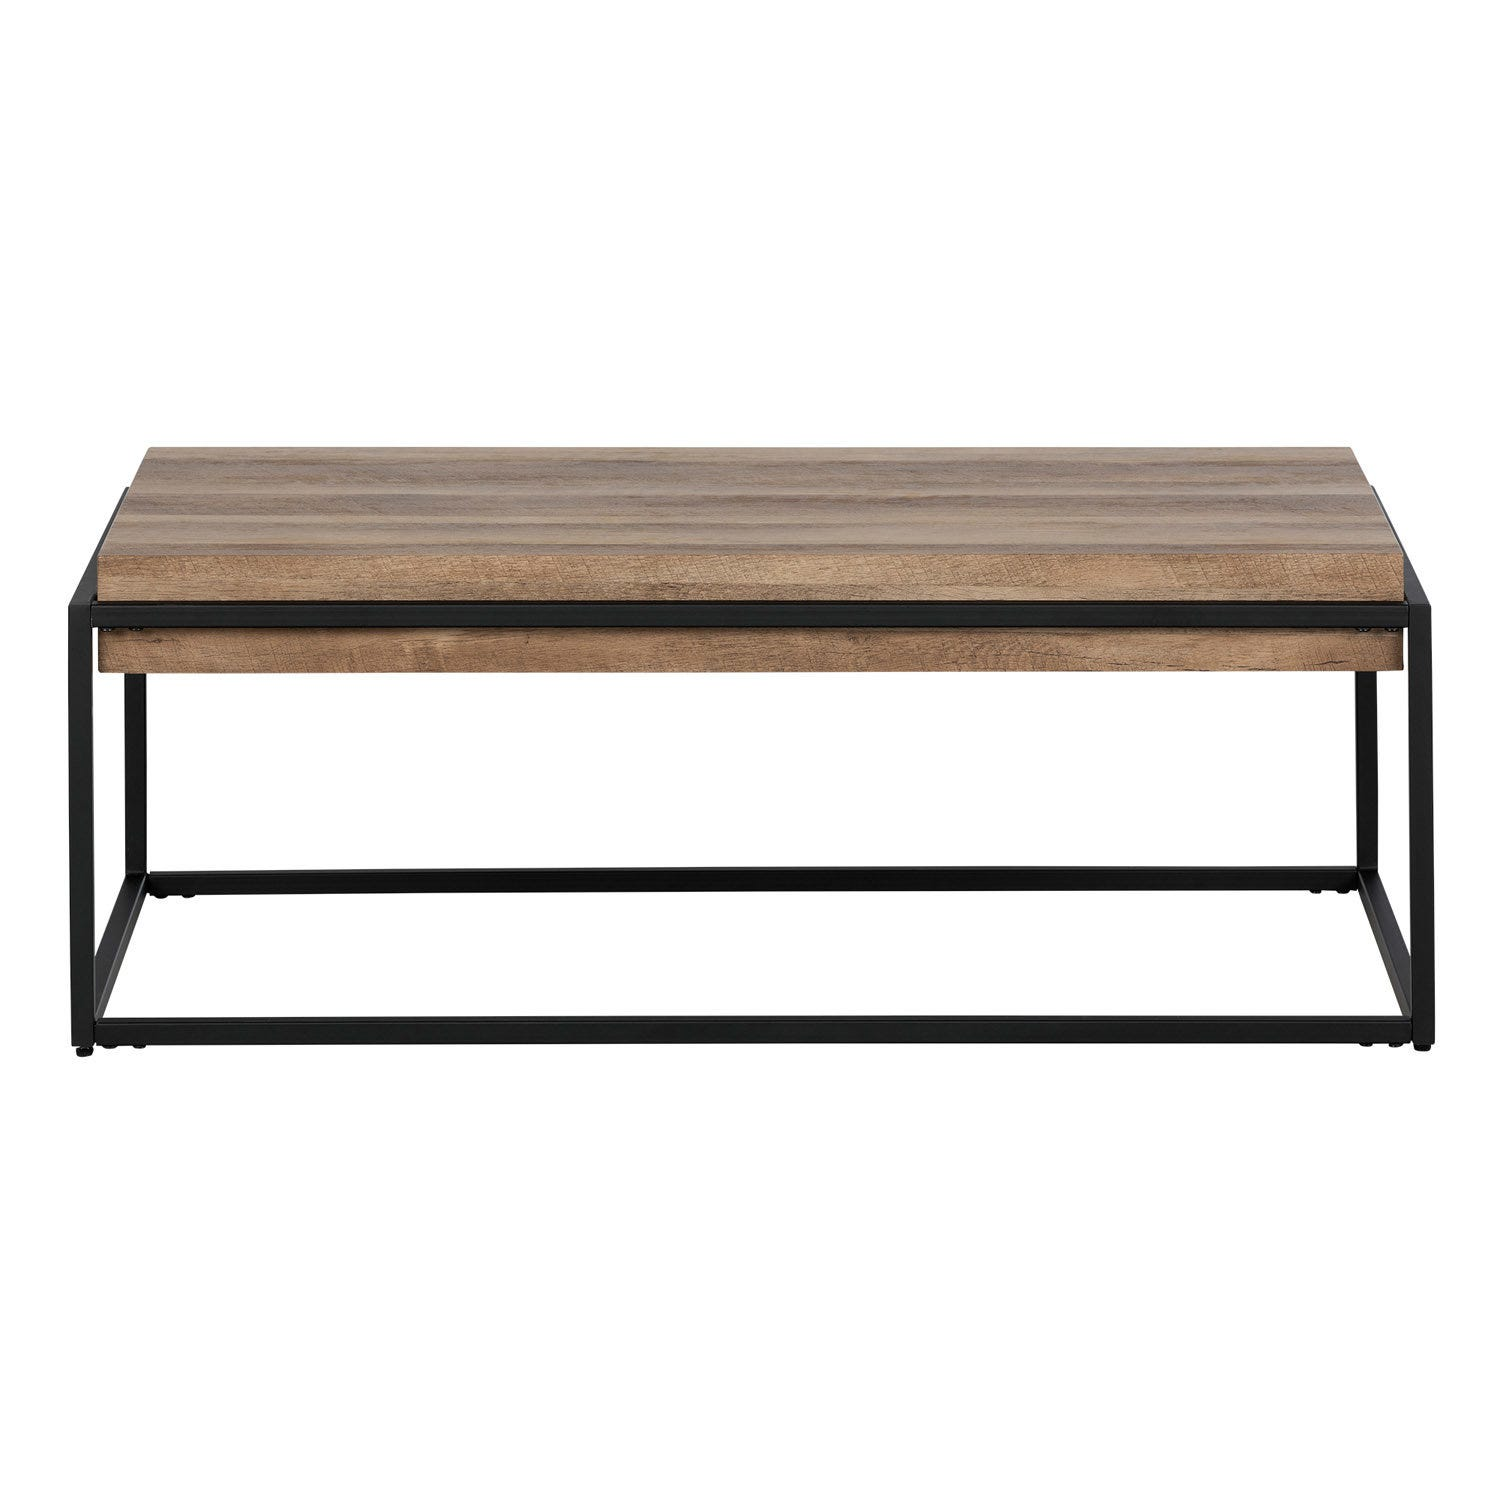 Meubles South Shore Modern Industrial Coffee Table Rd Furniture